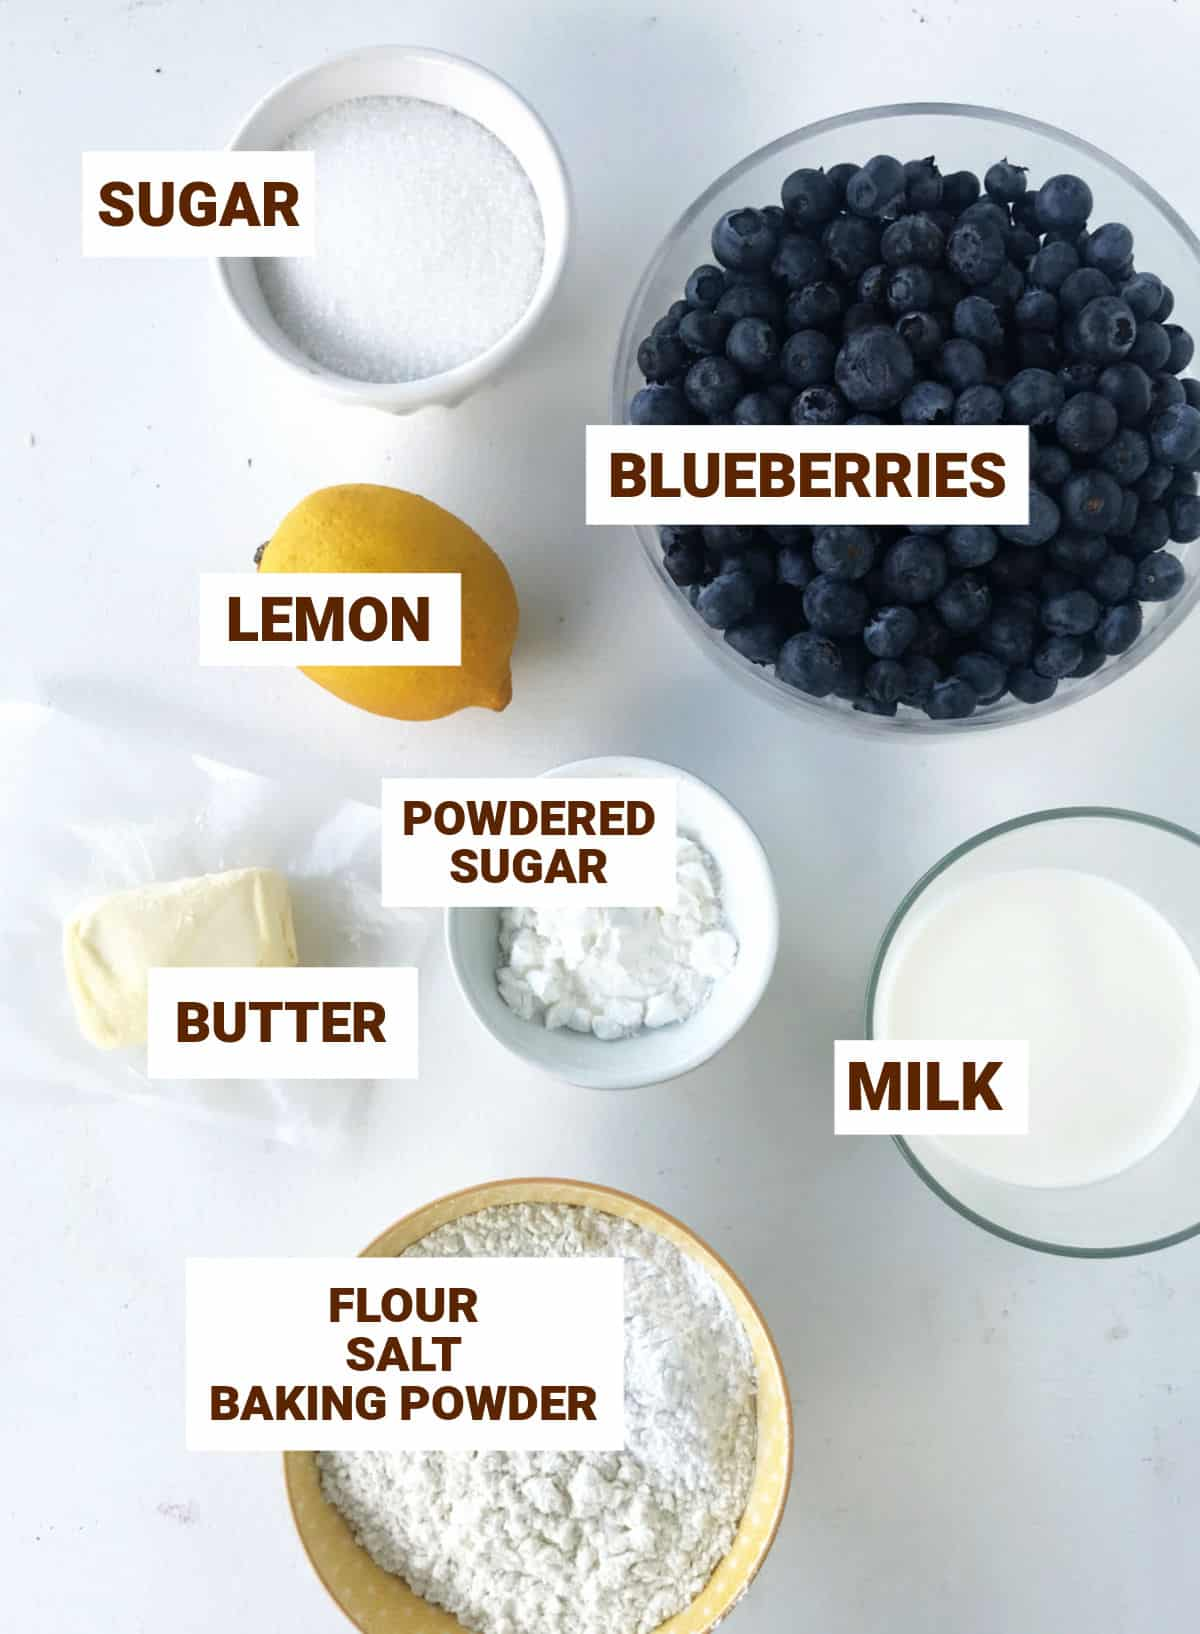 Bowls with ingredients for blueberry lemon cobbler on a white surface